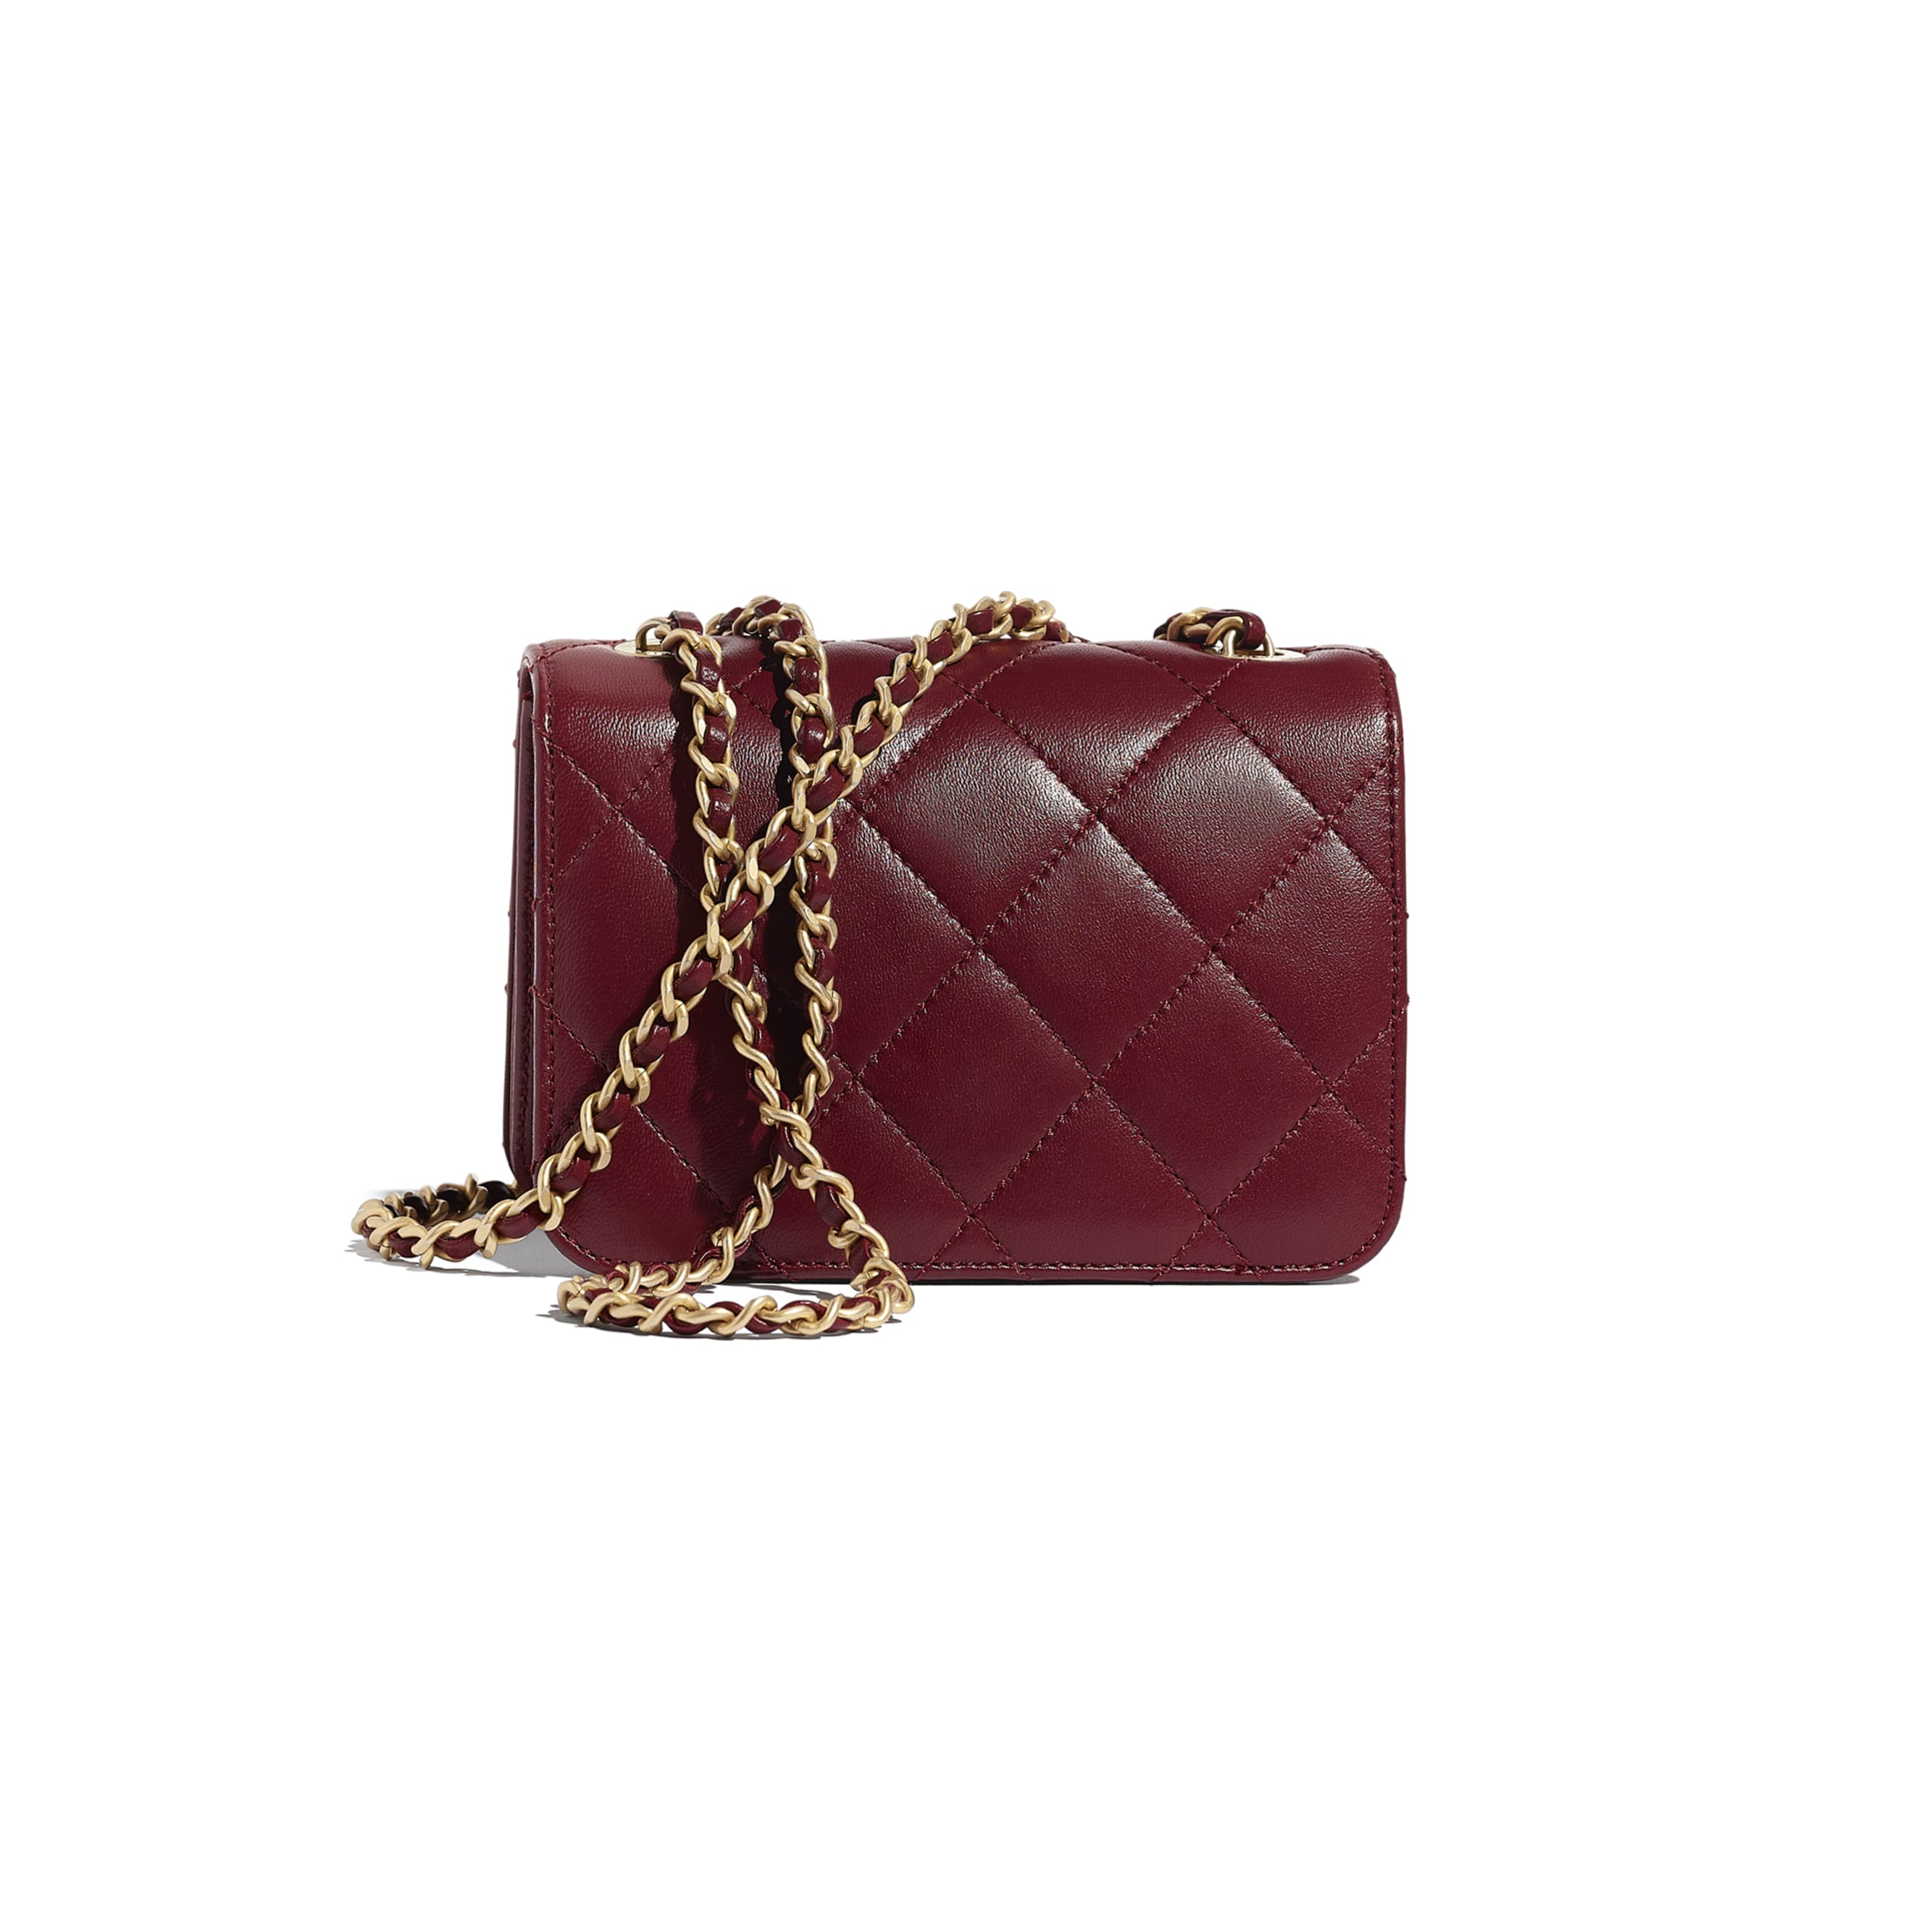 Small Flap Bag - Burgundy - Calfskin, Crystal Pearls, Resin & Gold-Tone Metal - CHANEL - Alternative view - see standard sized version